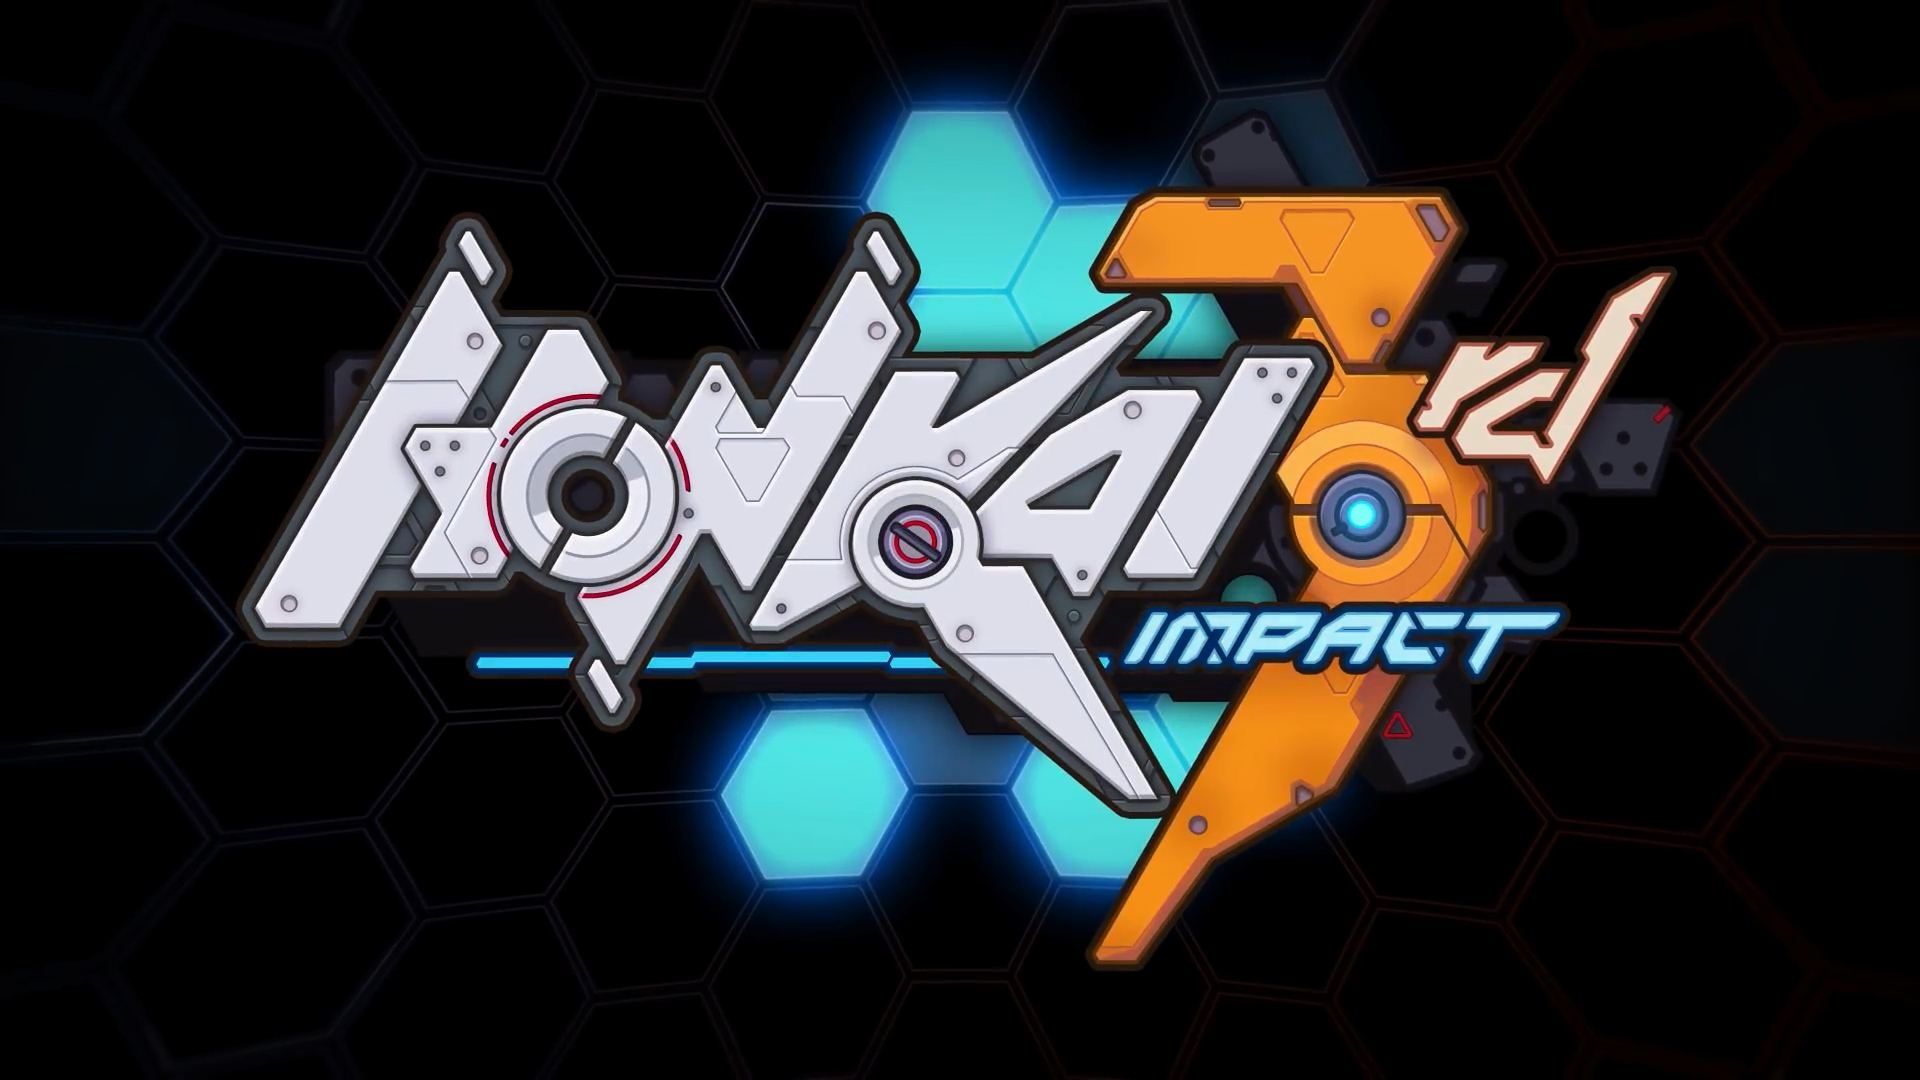 Mobile Action RPG Honkai Impact 3 launches in Southeast Asia